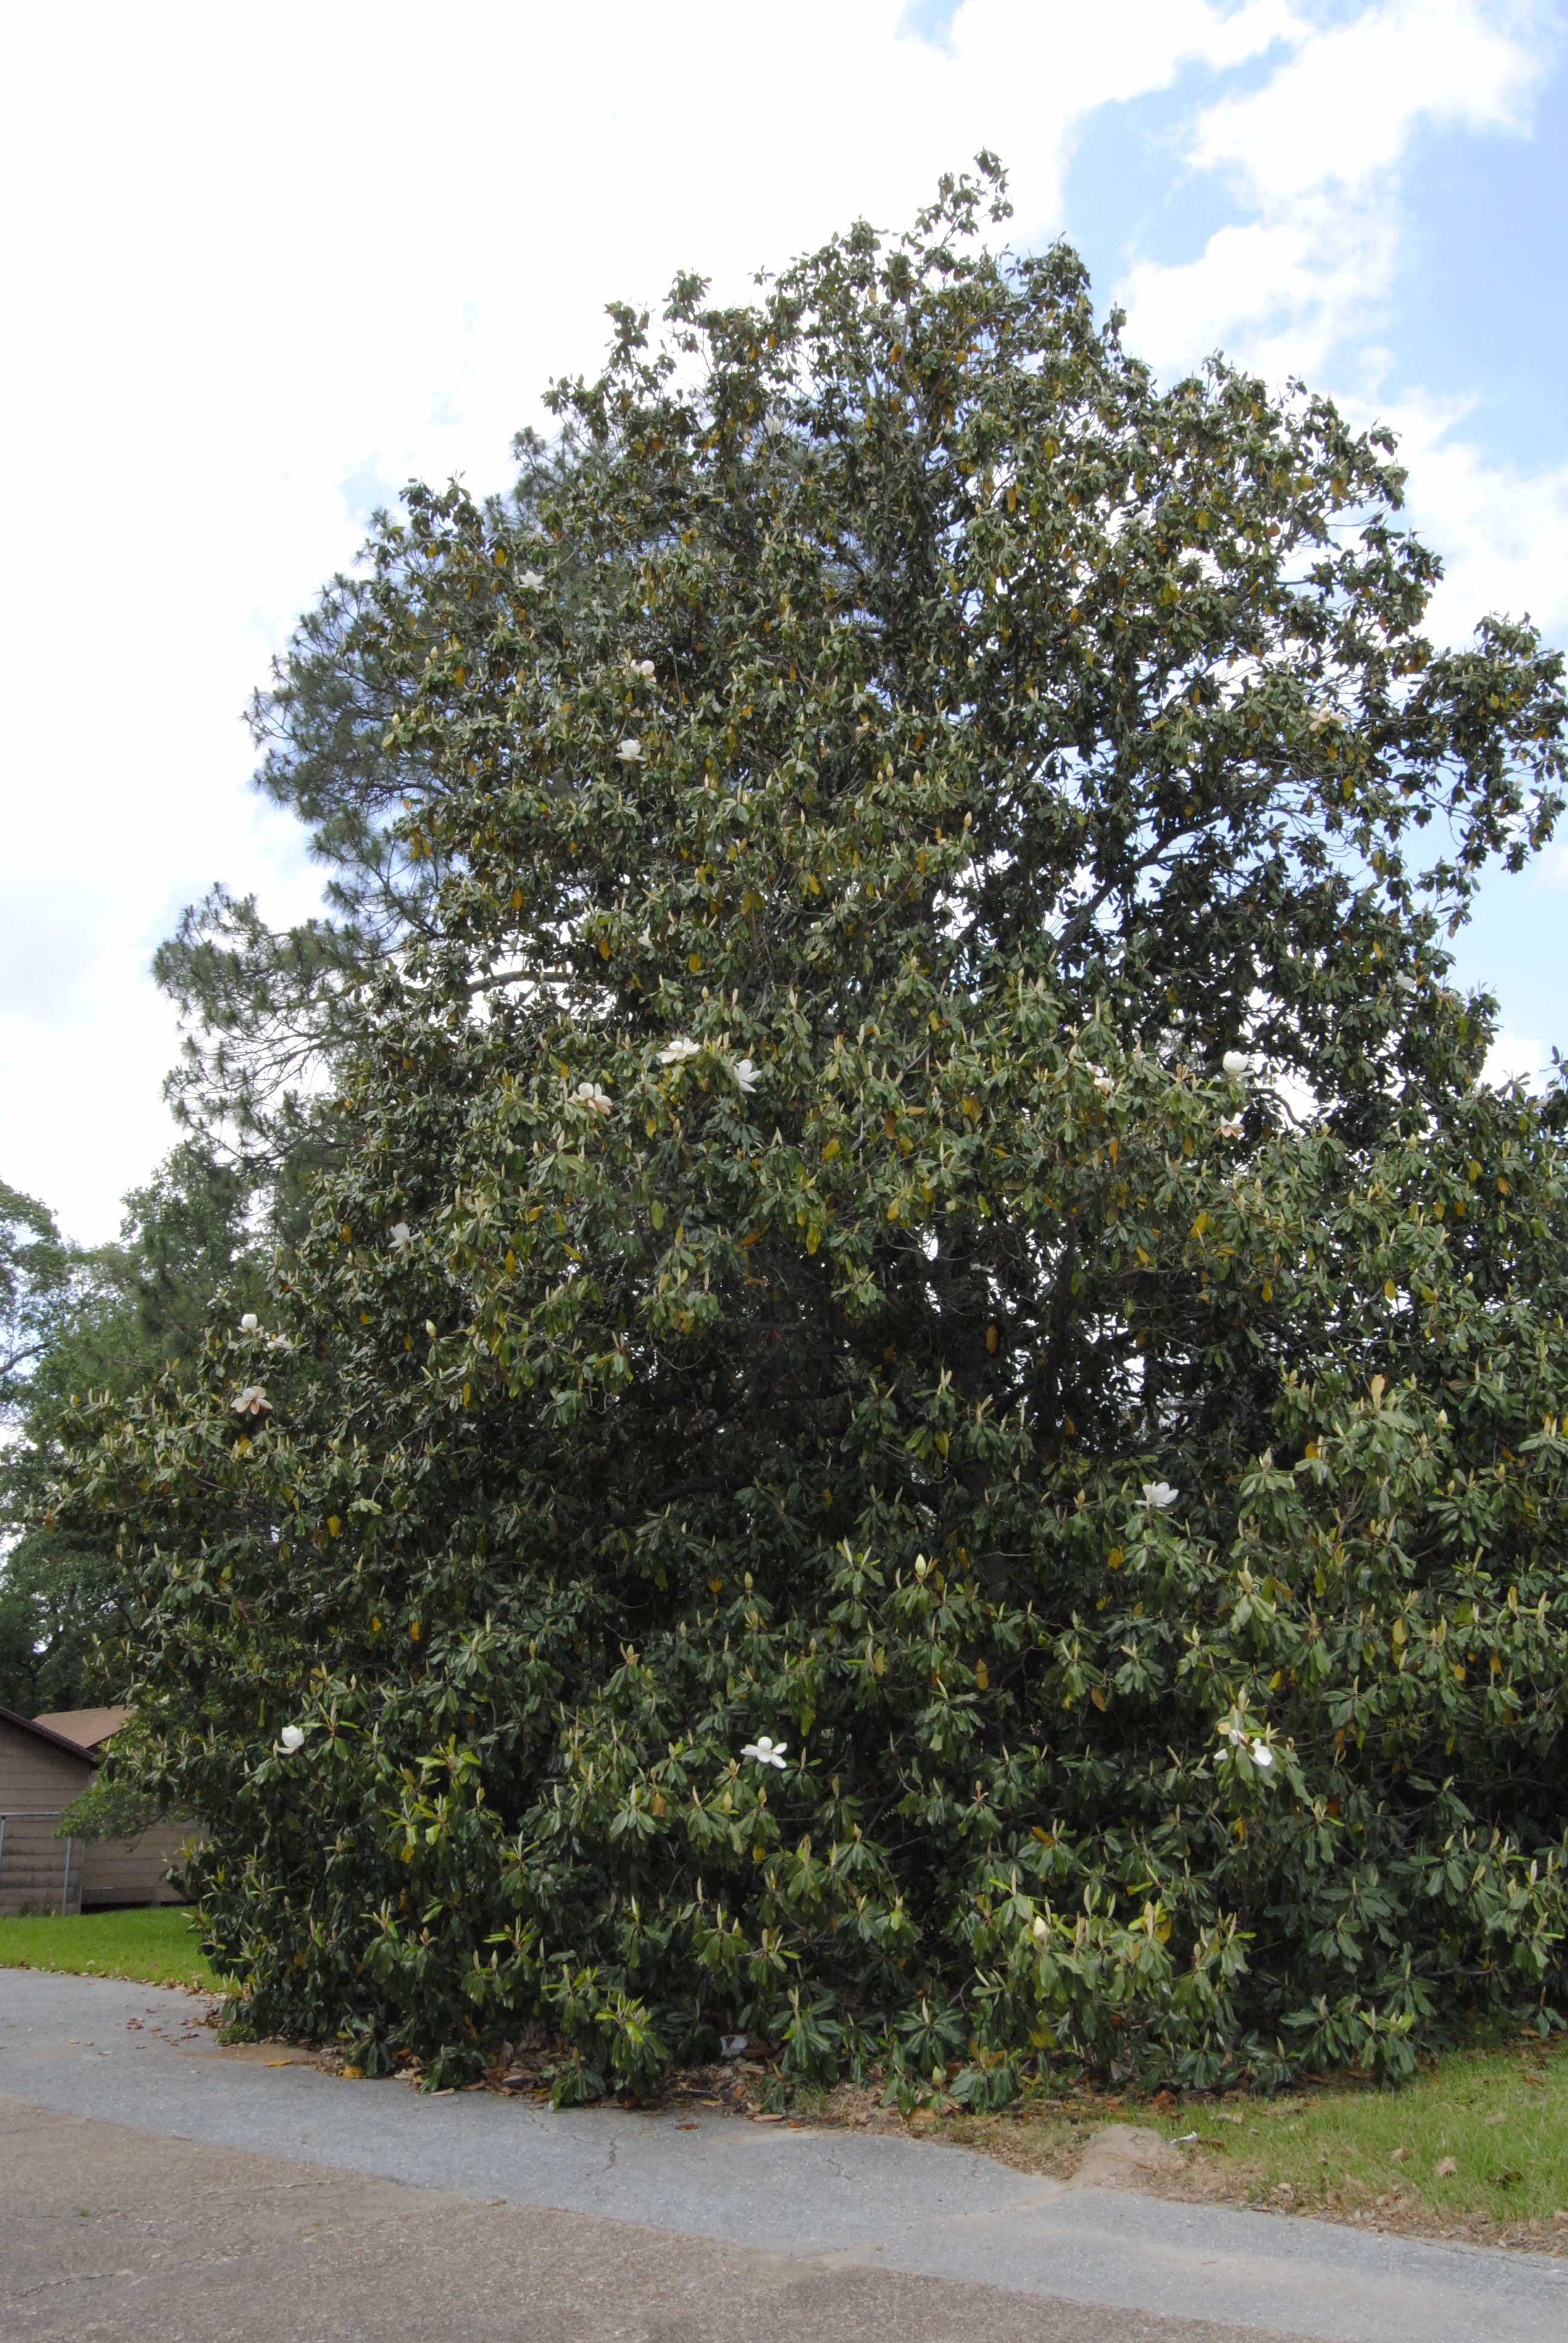 3.	Southern Magnolia